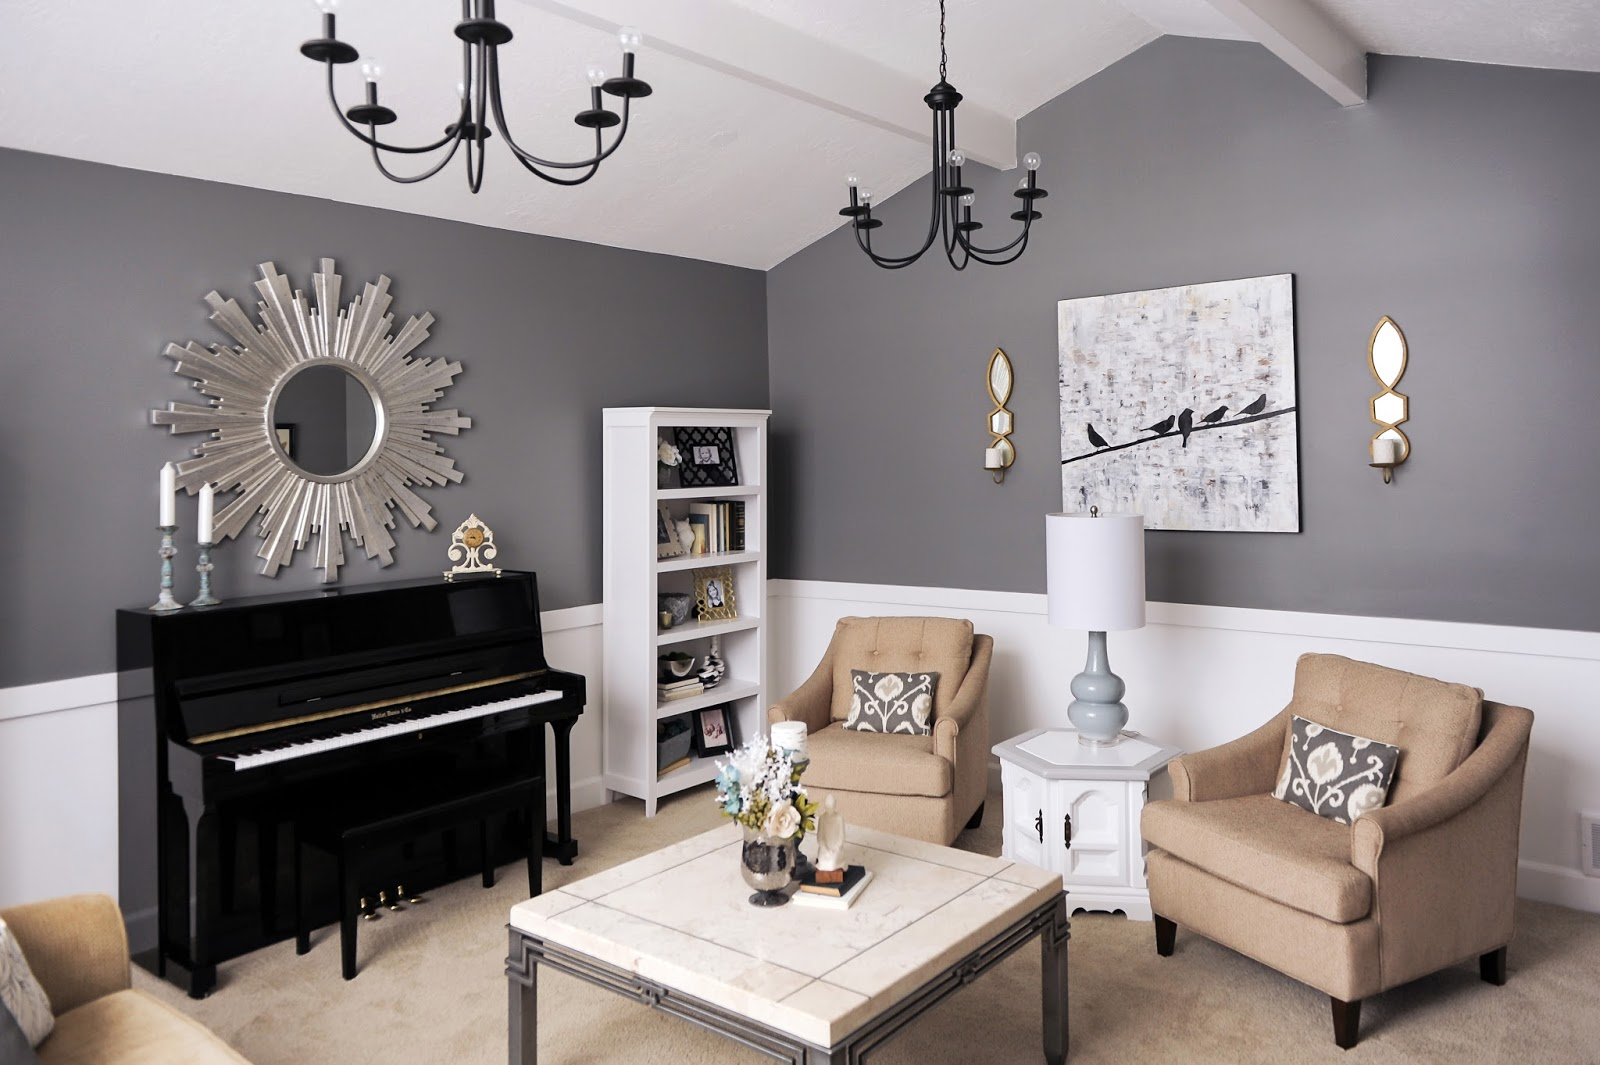 Studio 7 interior design client reveal transitional chic for Sherwin williams living room ideas